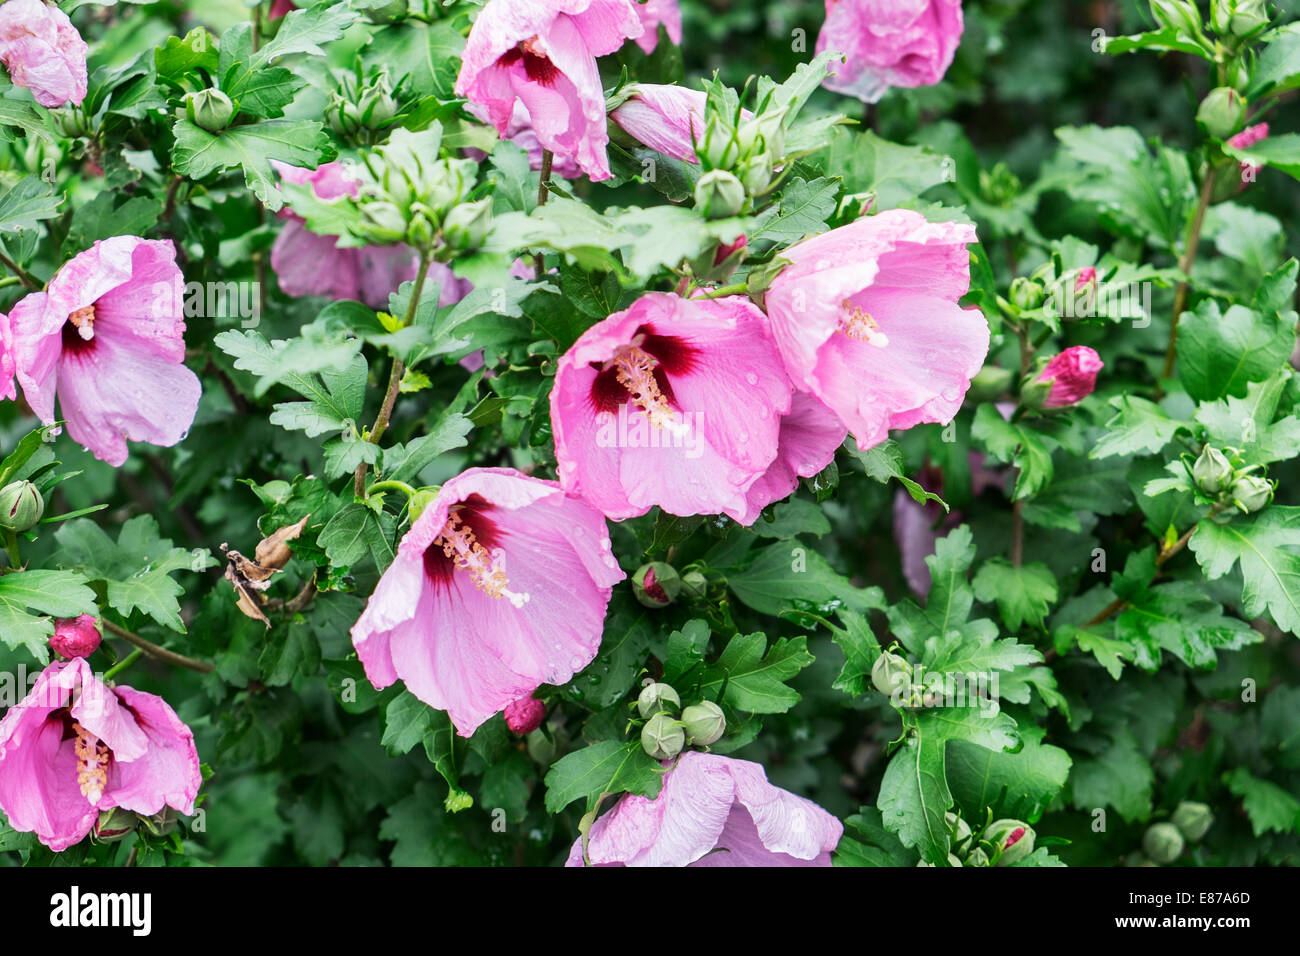 a-closeup-of-pink-flowers-drenched-with-